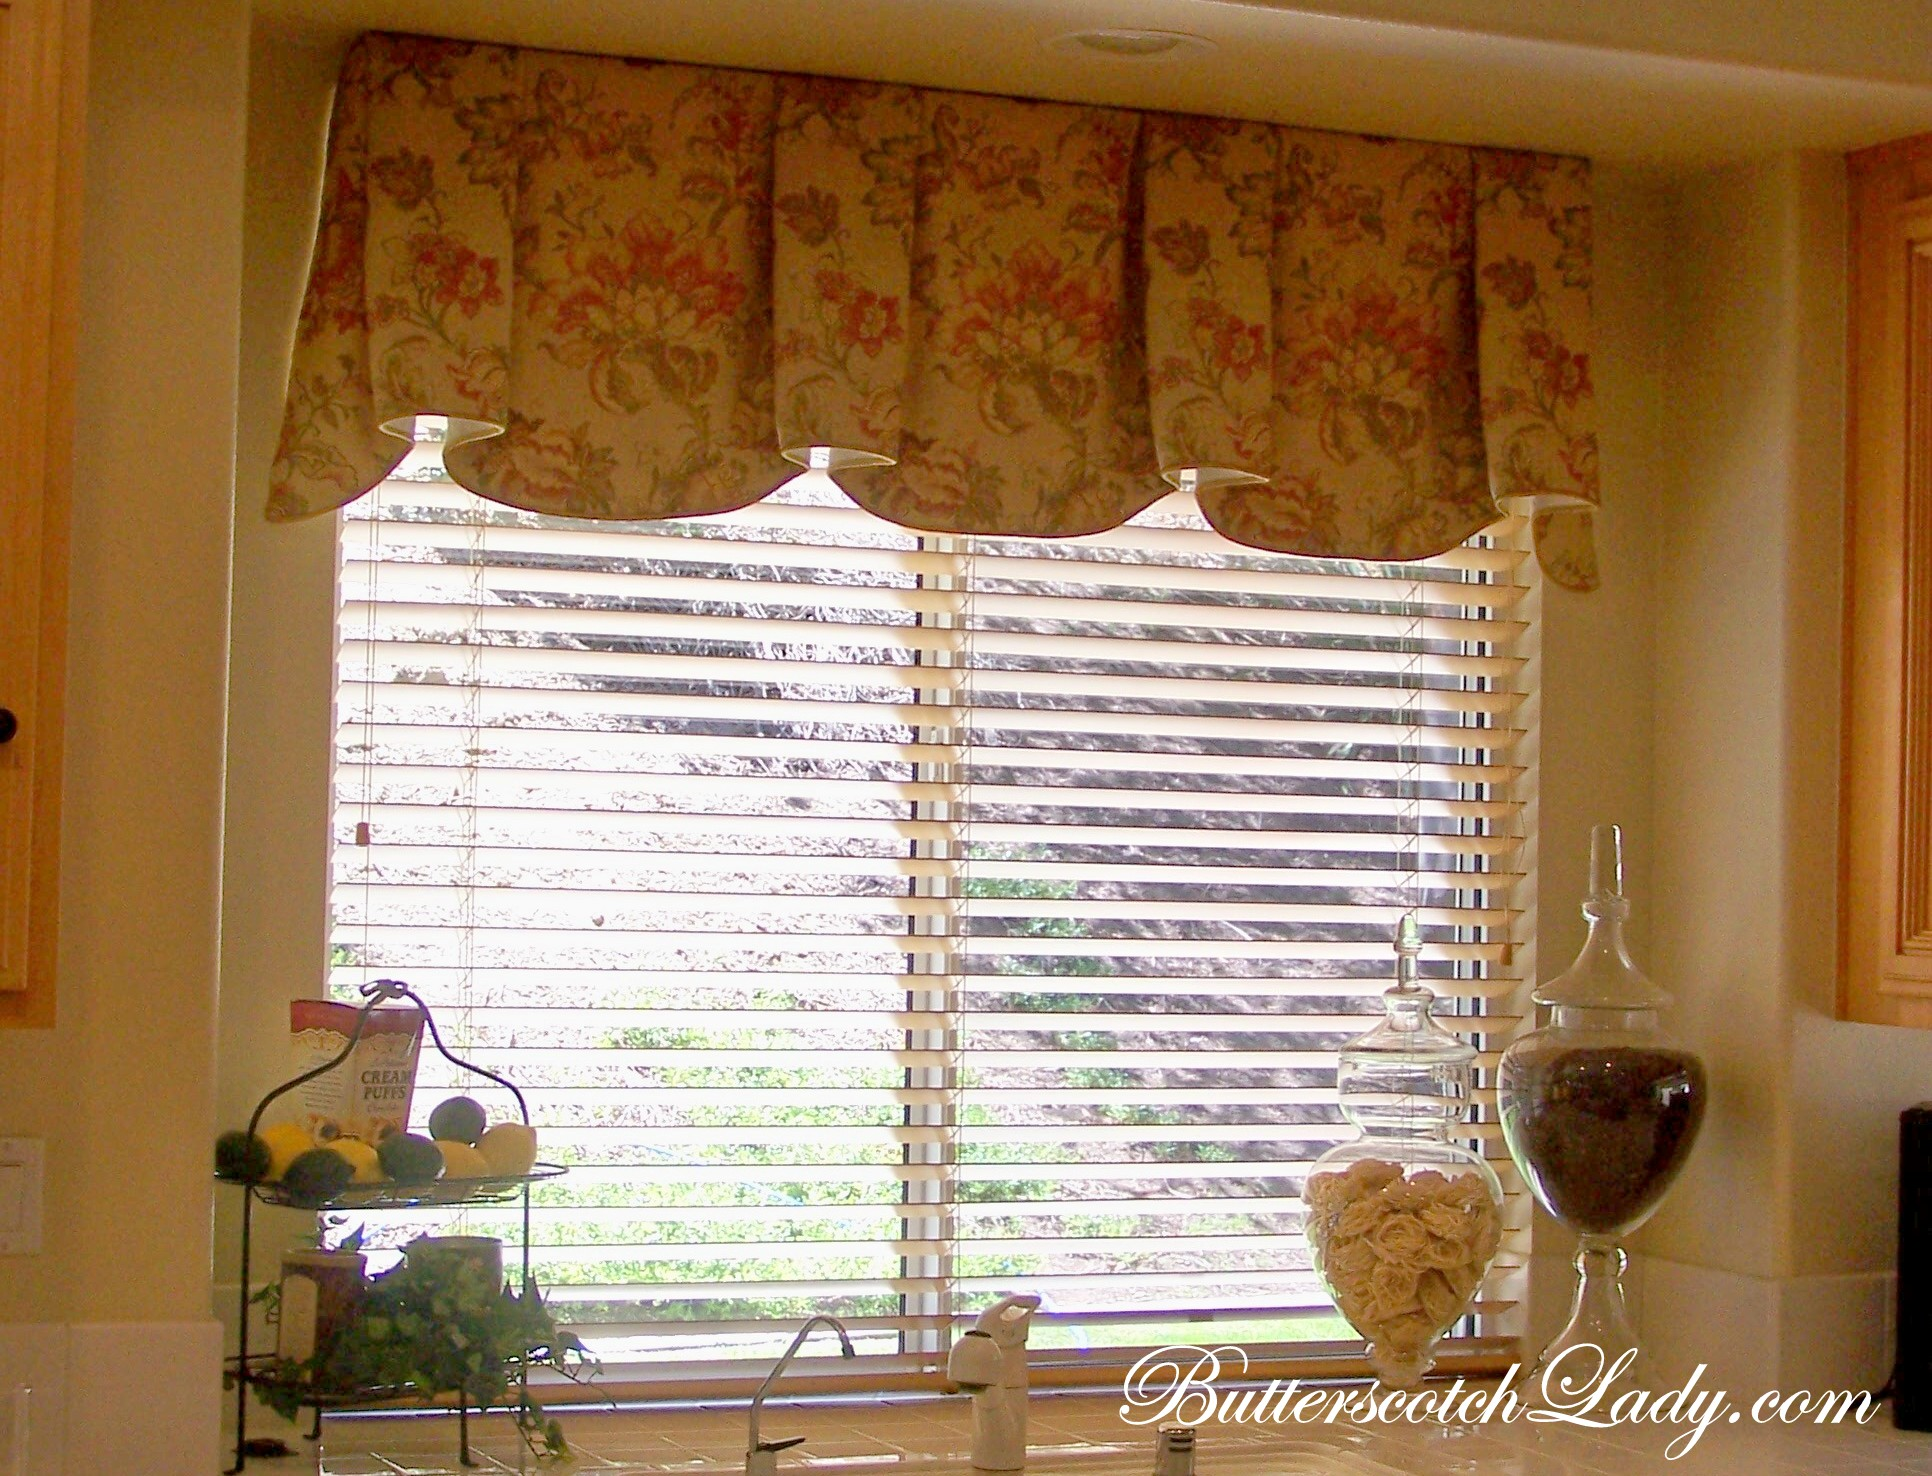 Window treatments butterscotch lady for Kitchen window treatments